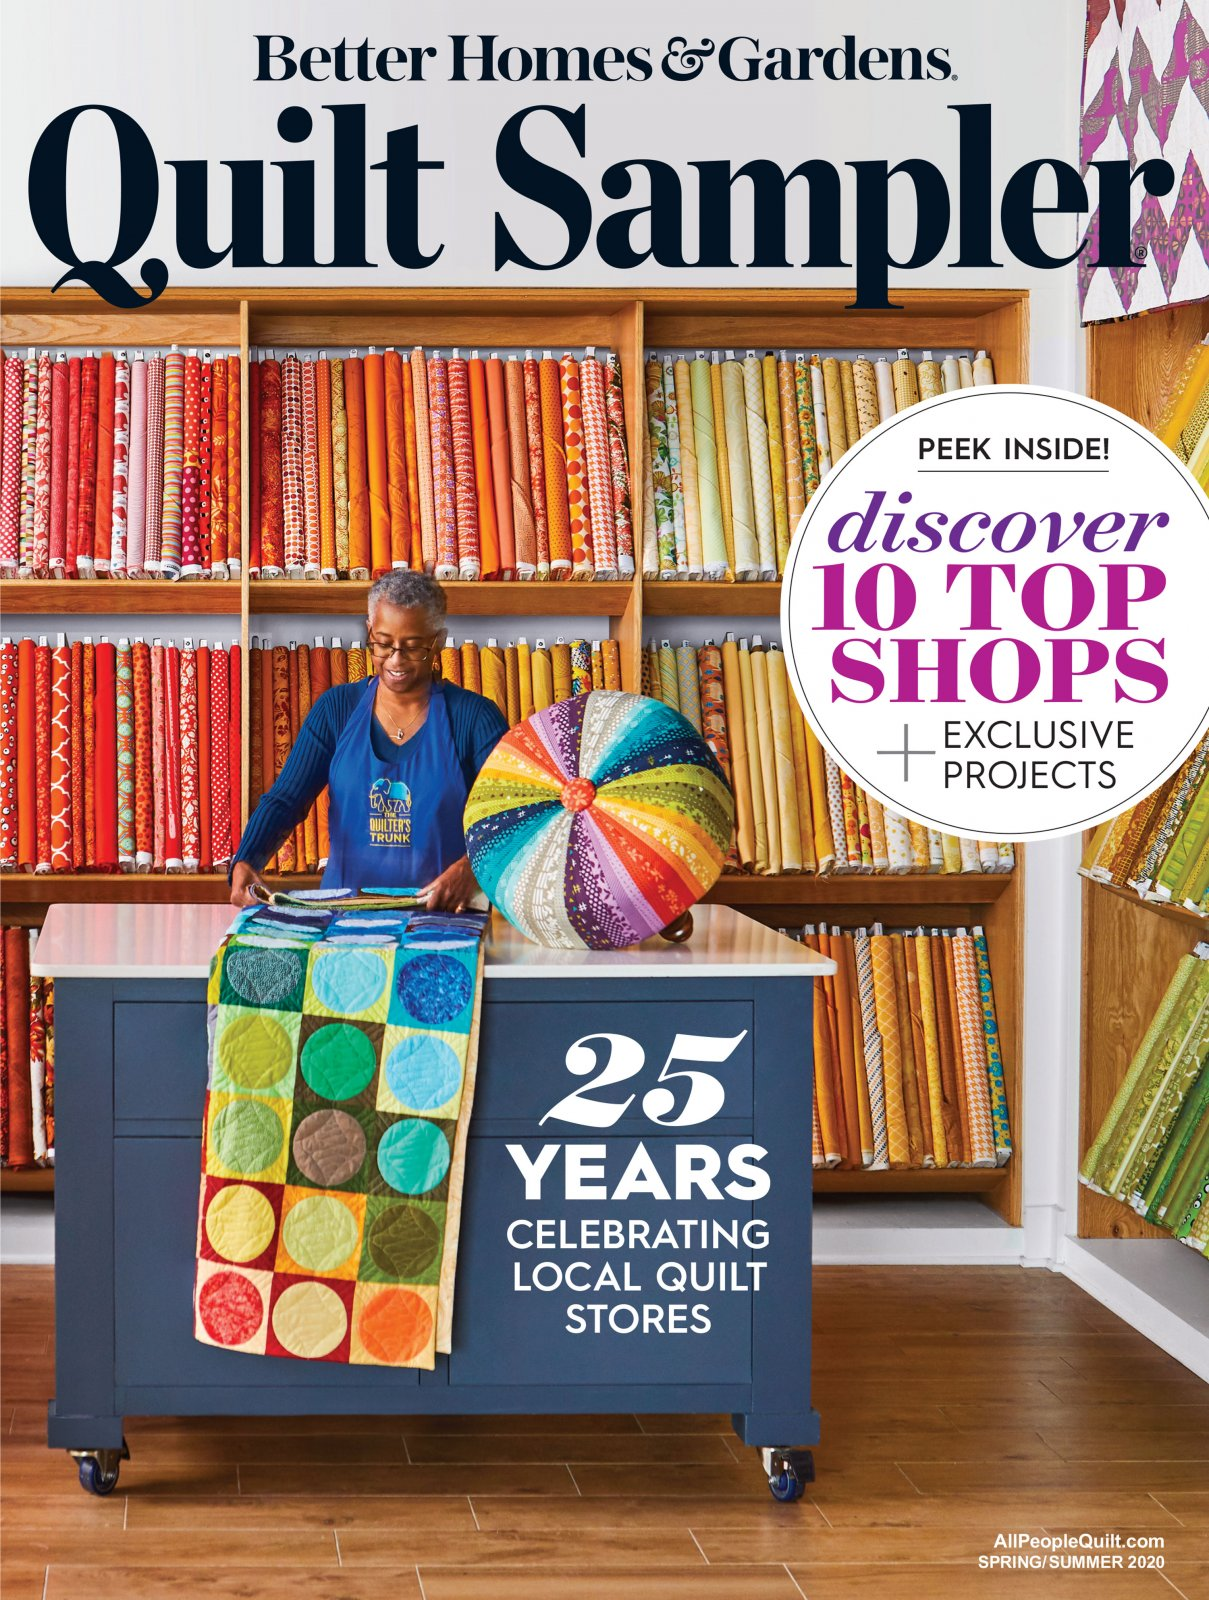 Quilt Sampler Spring/Summer 2020<br>Featured Shop - Lickety Stitch Quilts